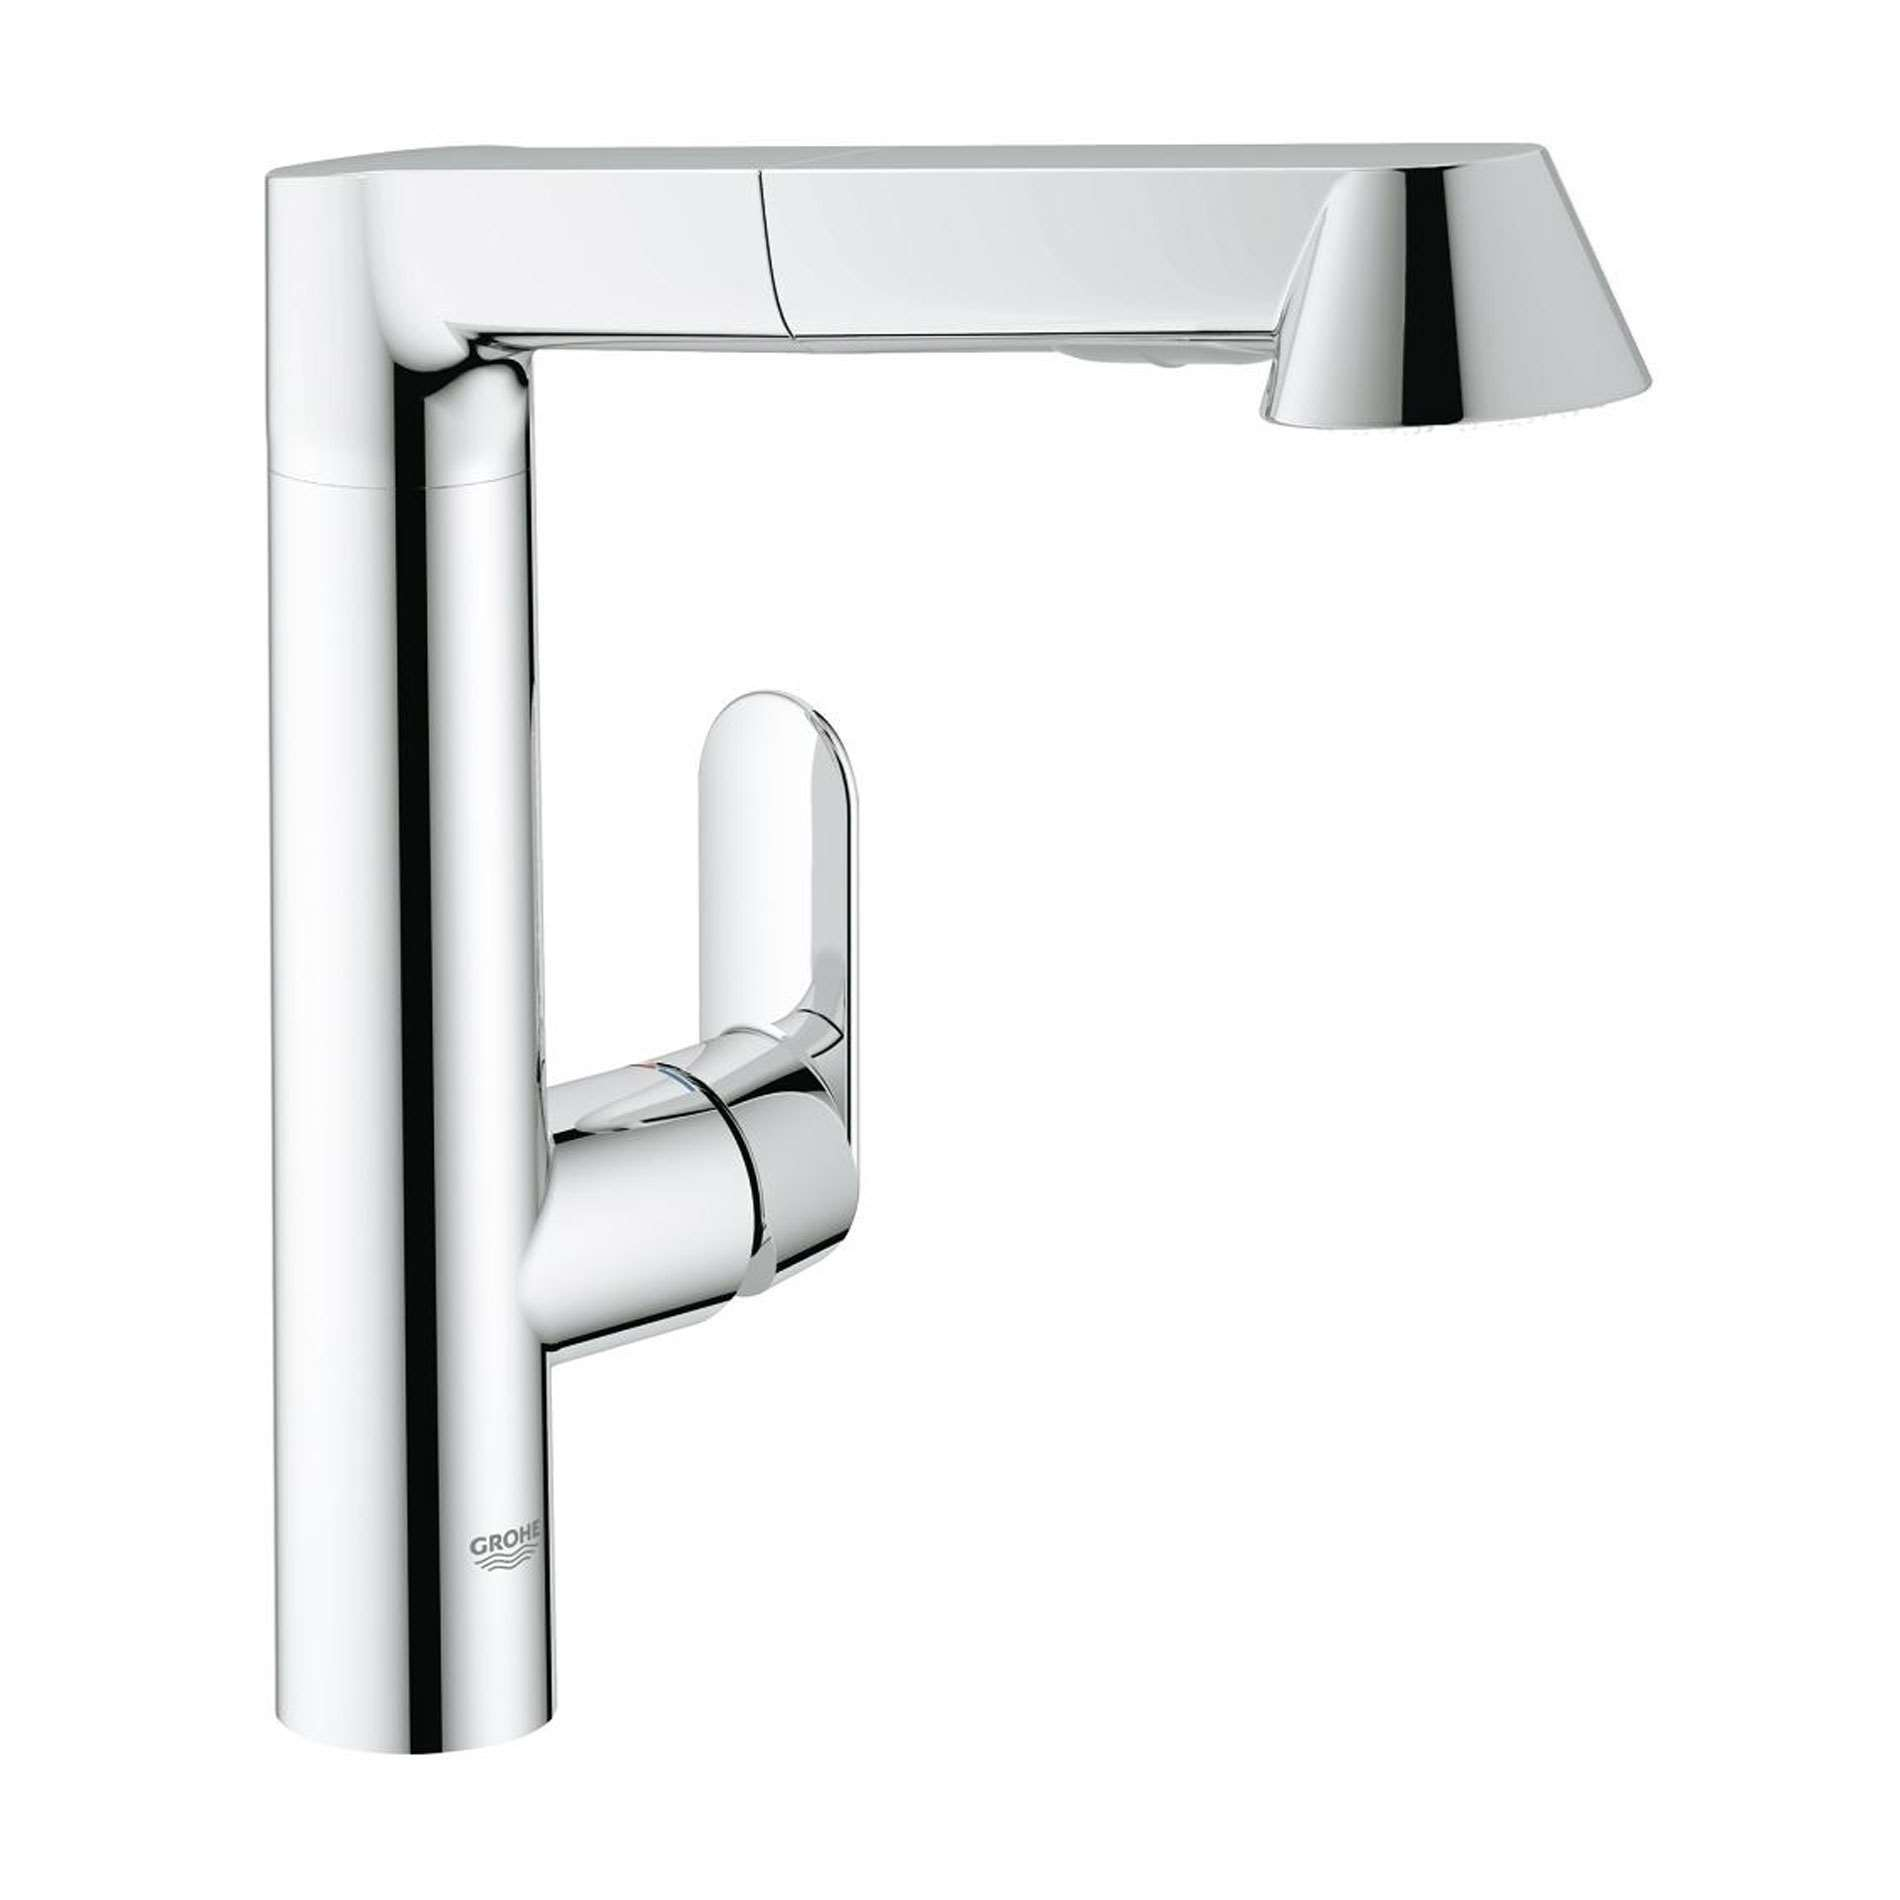 Picture of K7 32176000 Pull Out Chrome Tap